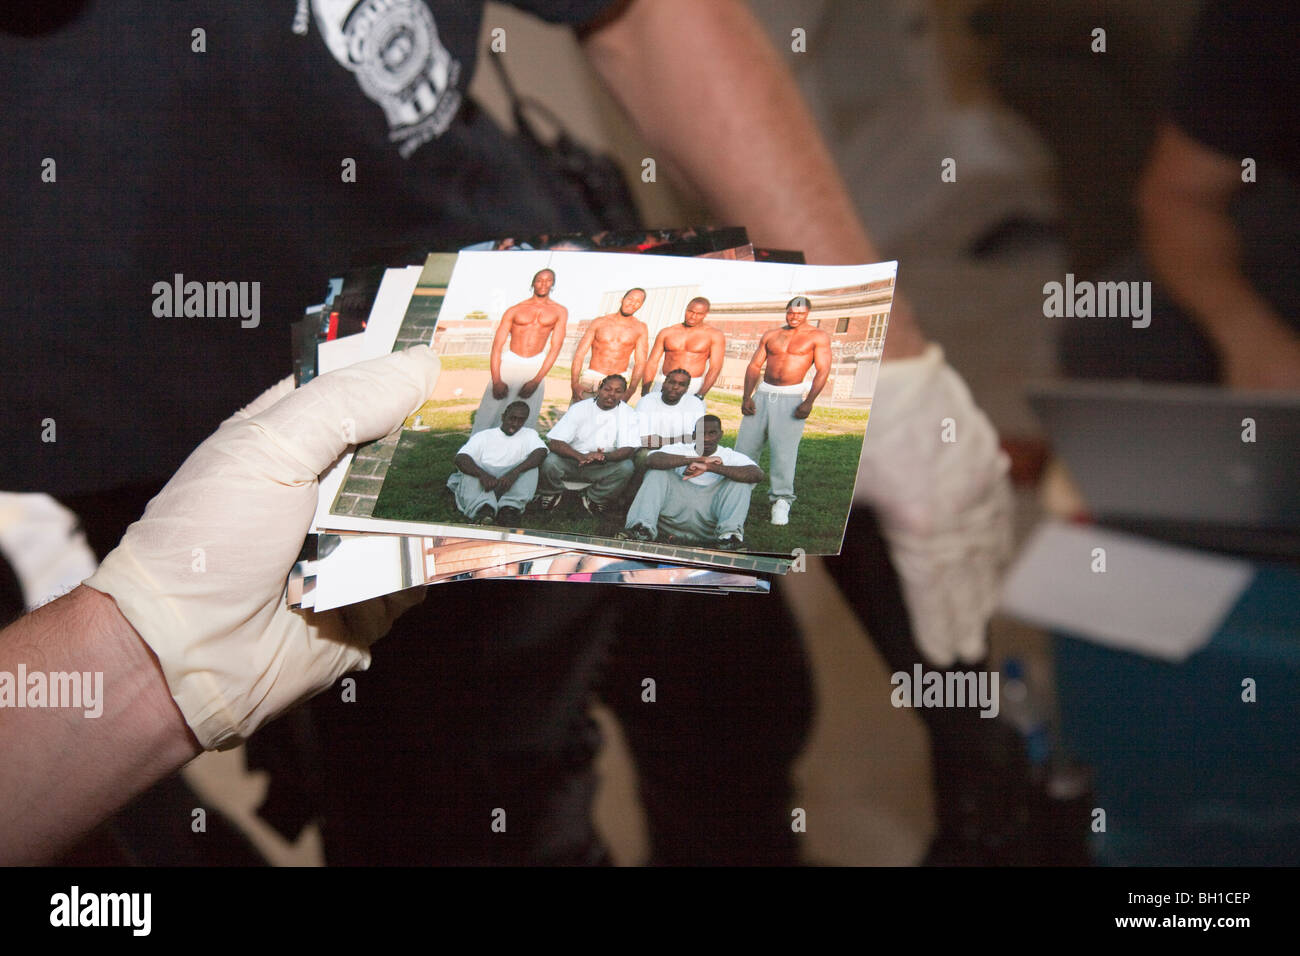 Photos located during the execution of a search warrant. Gang signs. - Stock Image